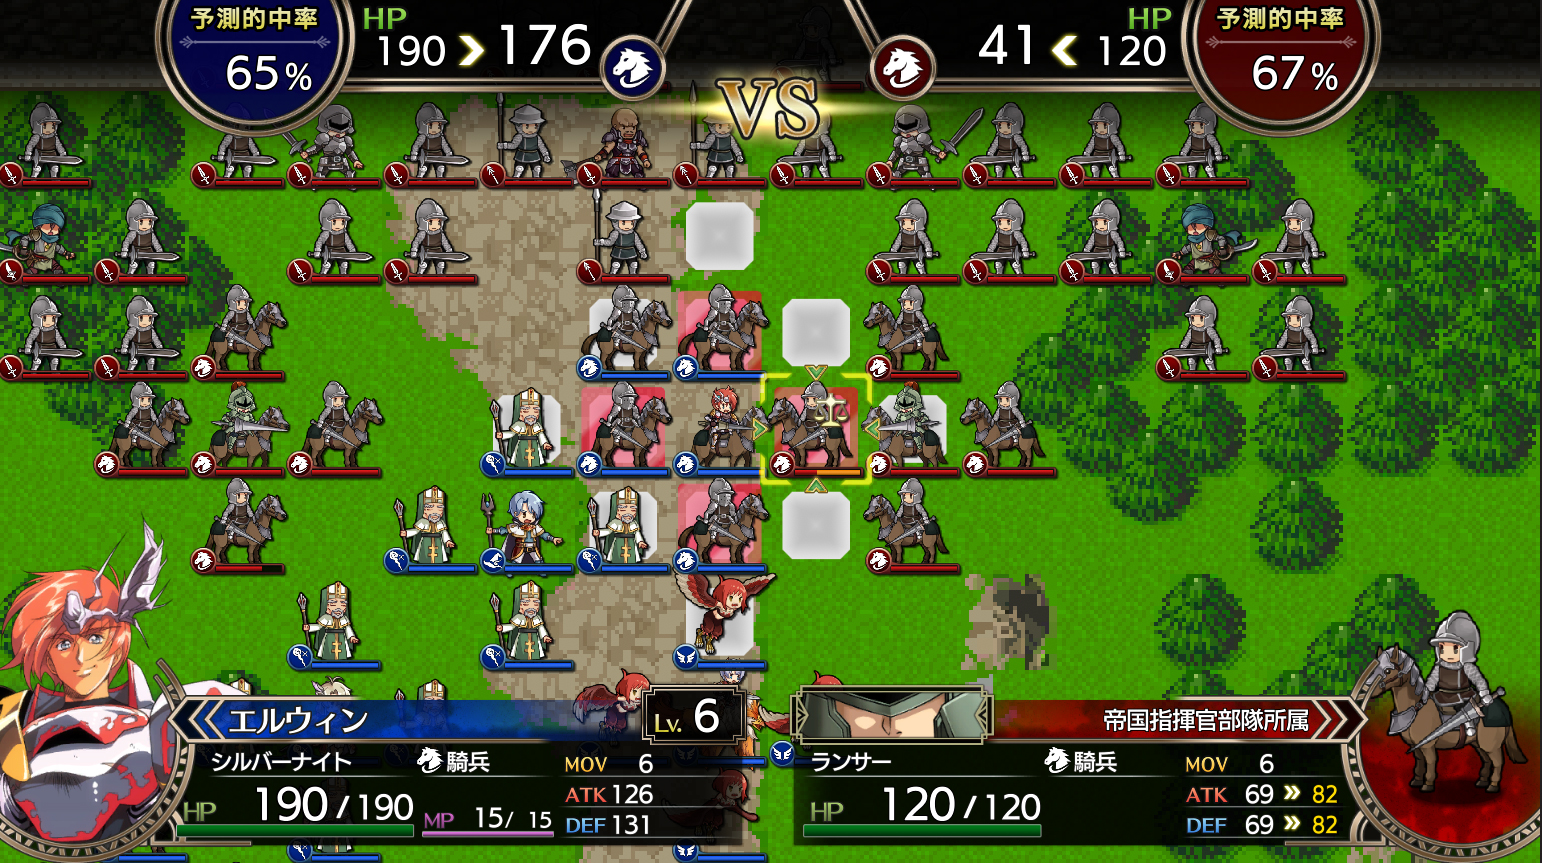 Langrisser I Ii Demo For Playstation 4 And Nintendo Switch Will Be Available February 7 In Japan Rpg Site